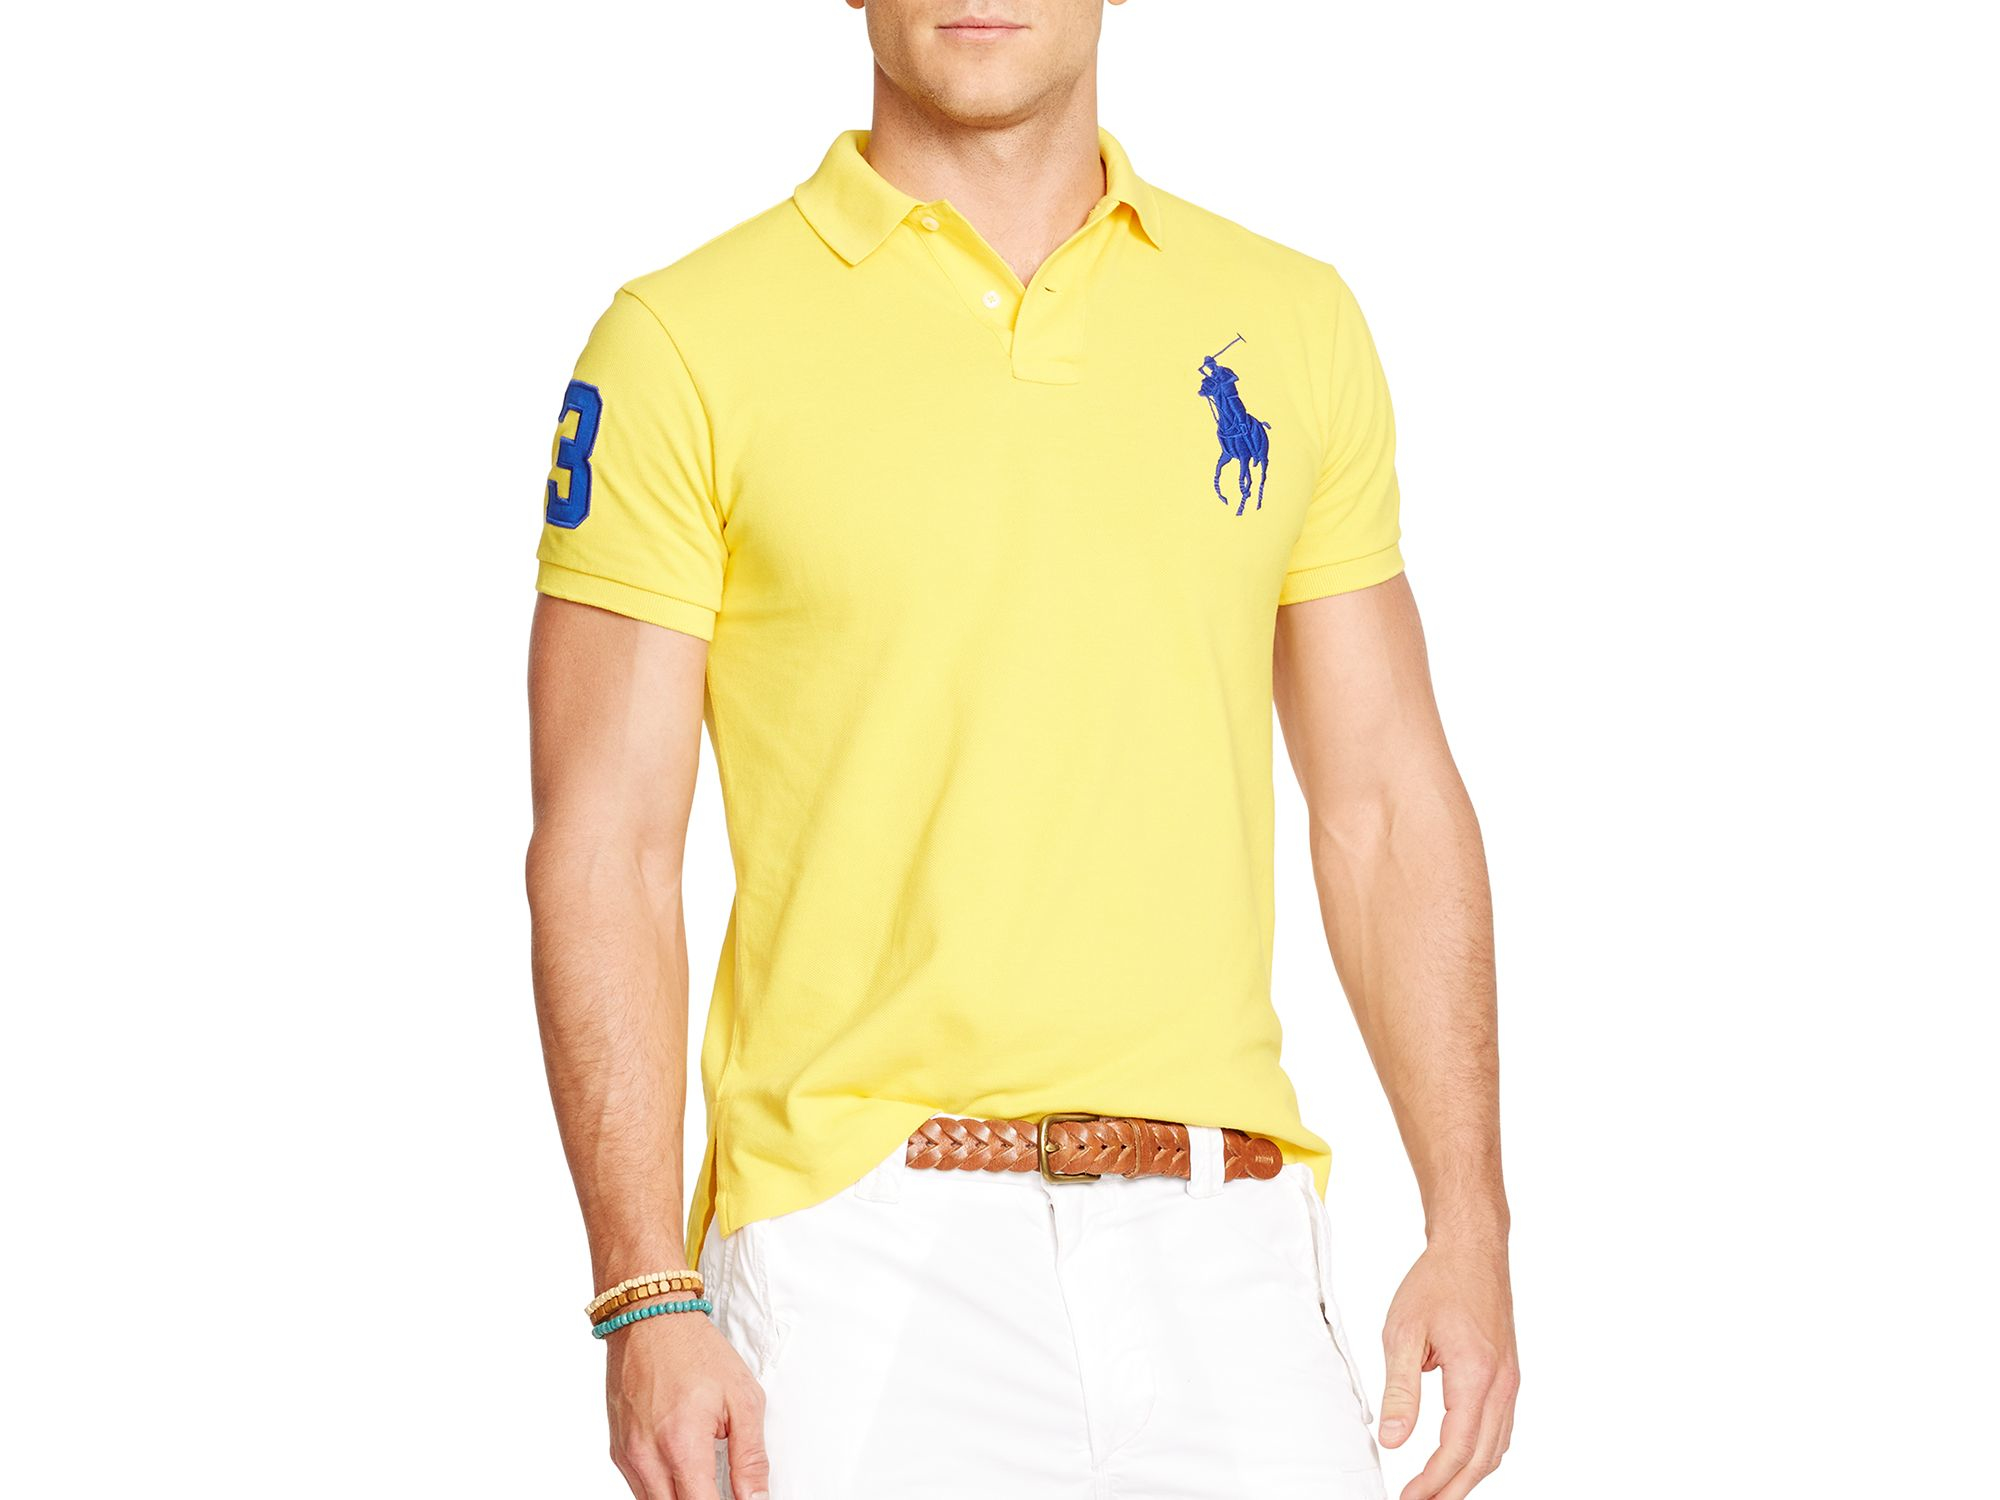 Lyst - Ralph Lauren Polo Custom-fit Big Pony Mesh Polo Shirt - Slim ... 250ea5ebcd0c8